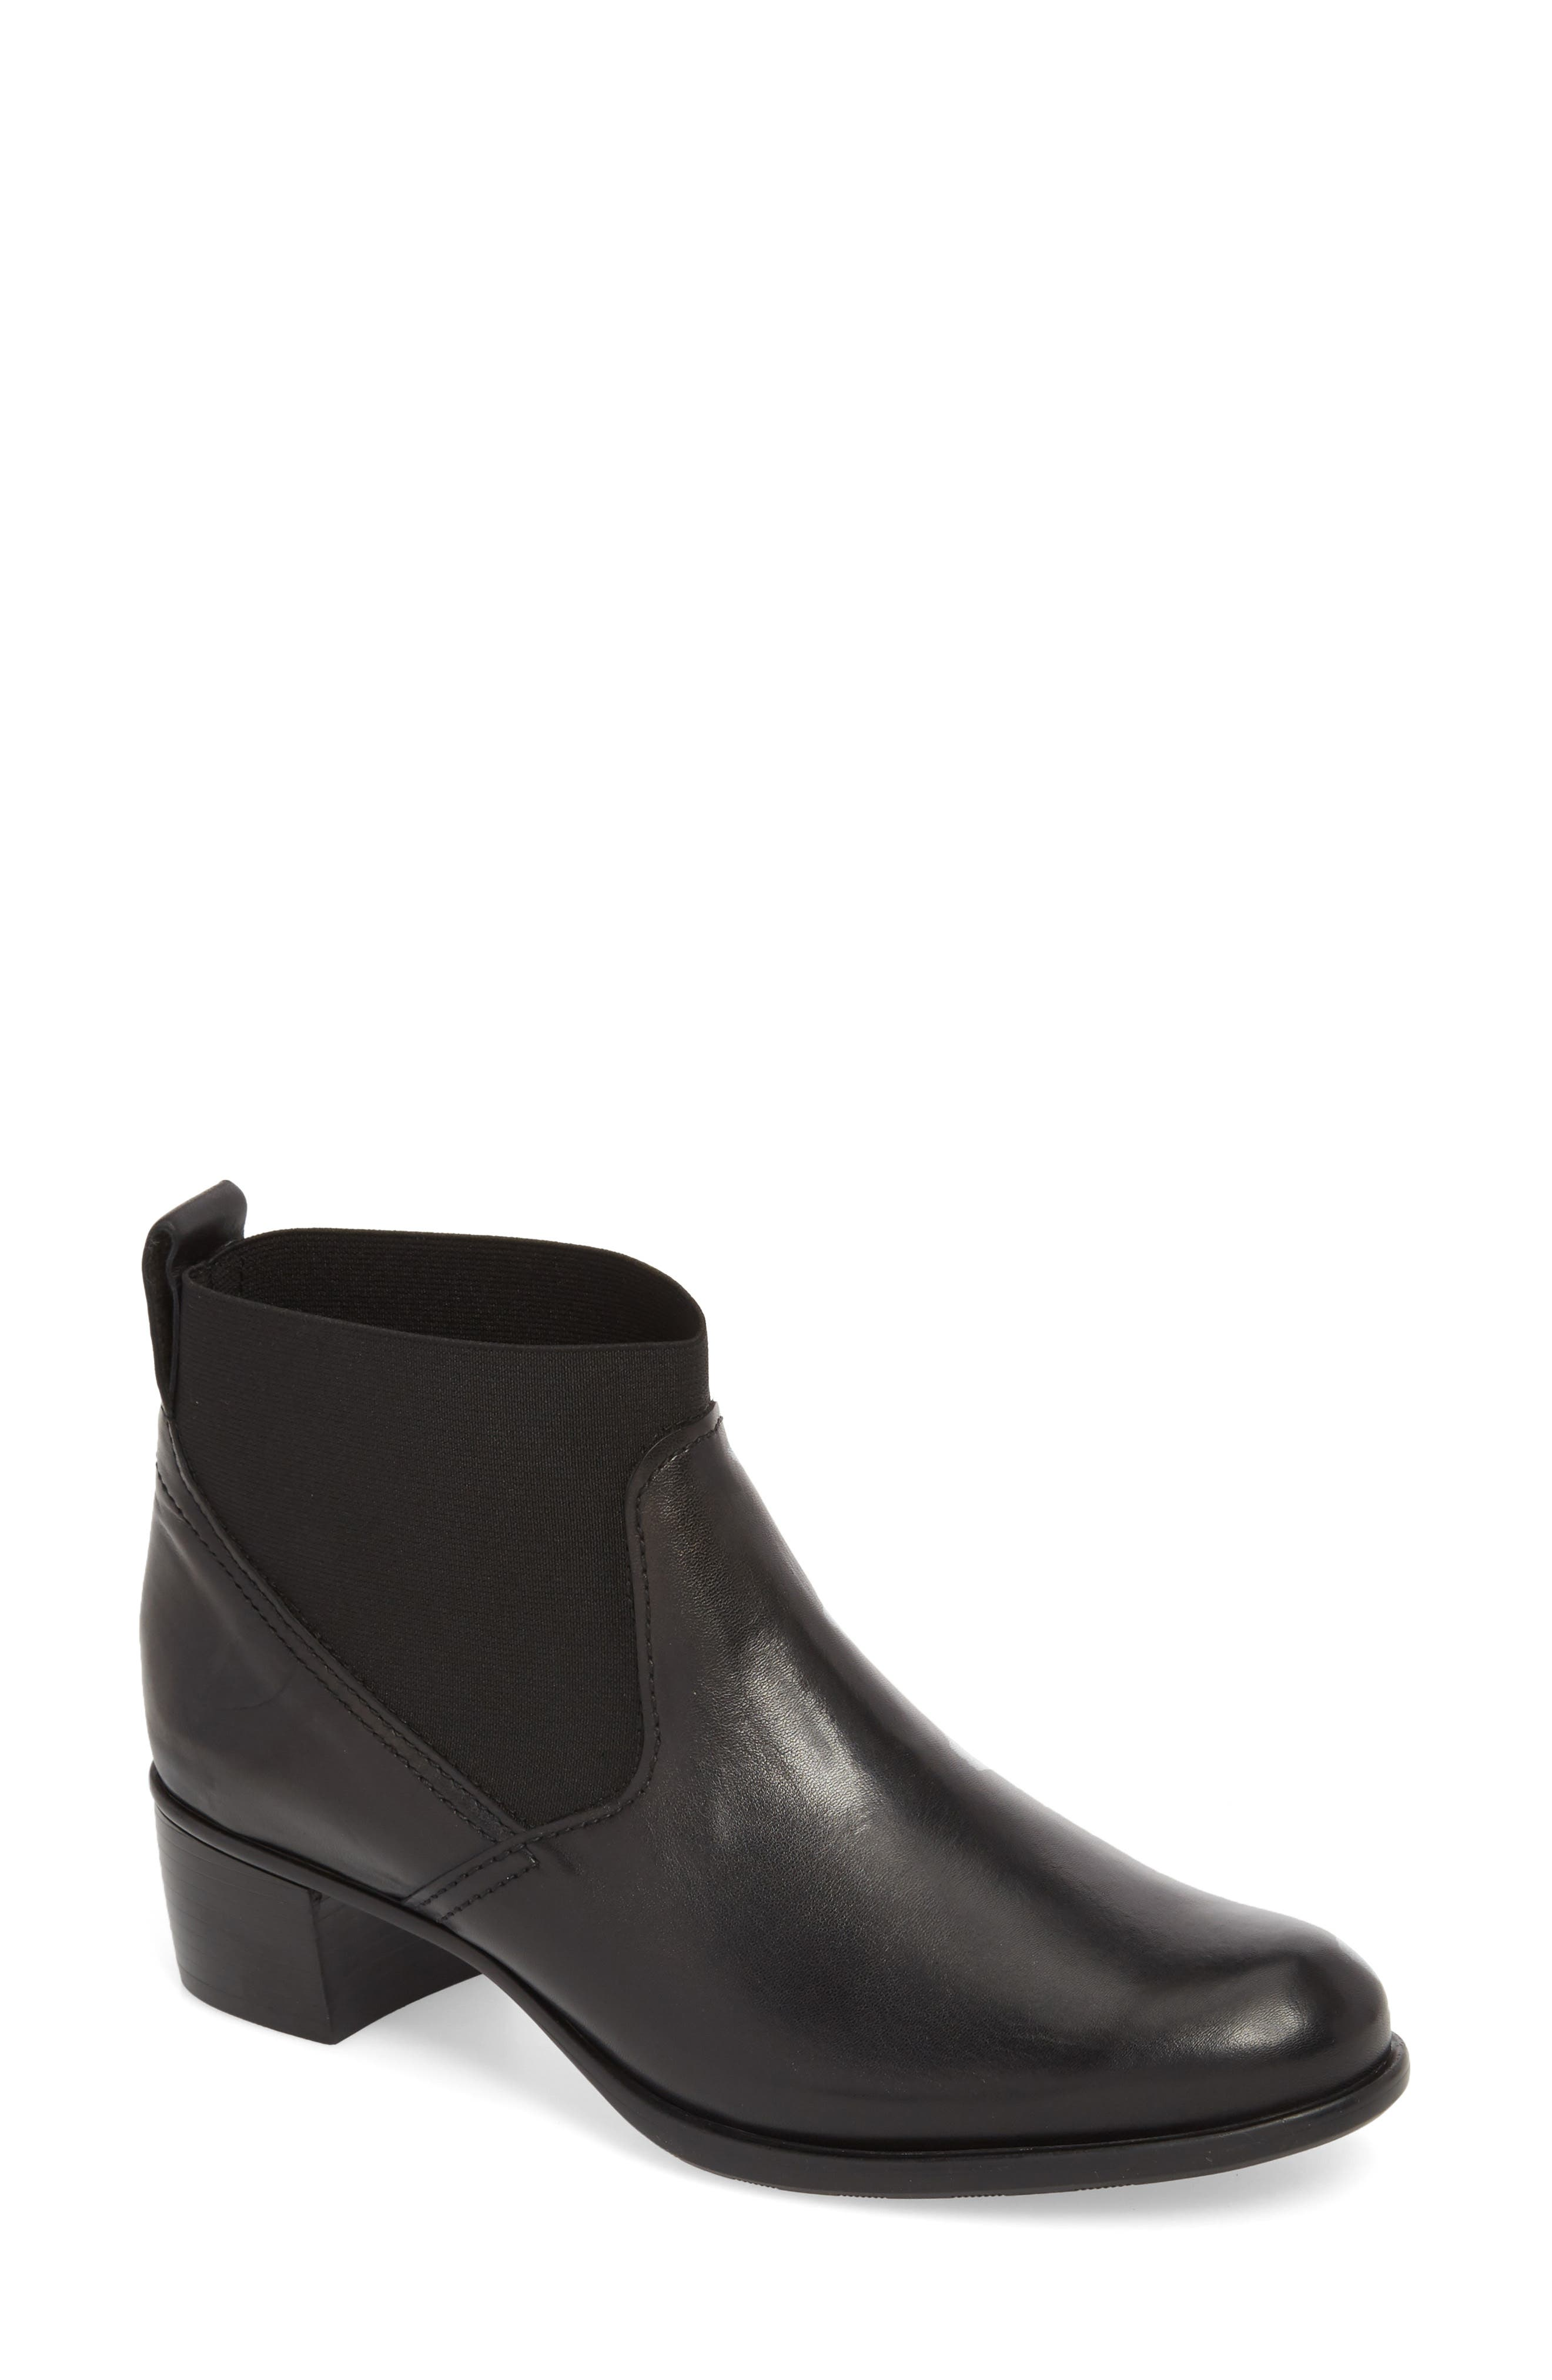 Ana Bootie,                         Main,                         color, BLACK LEATHER